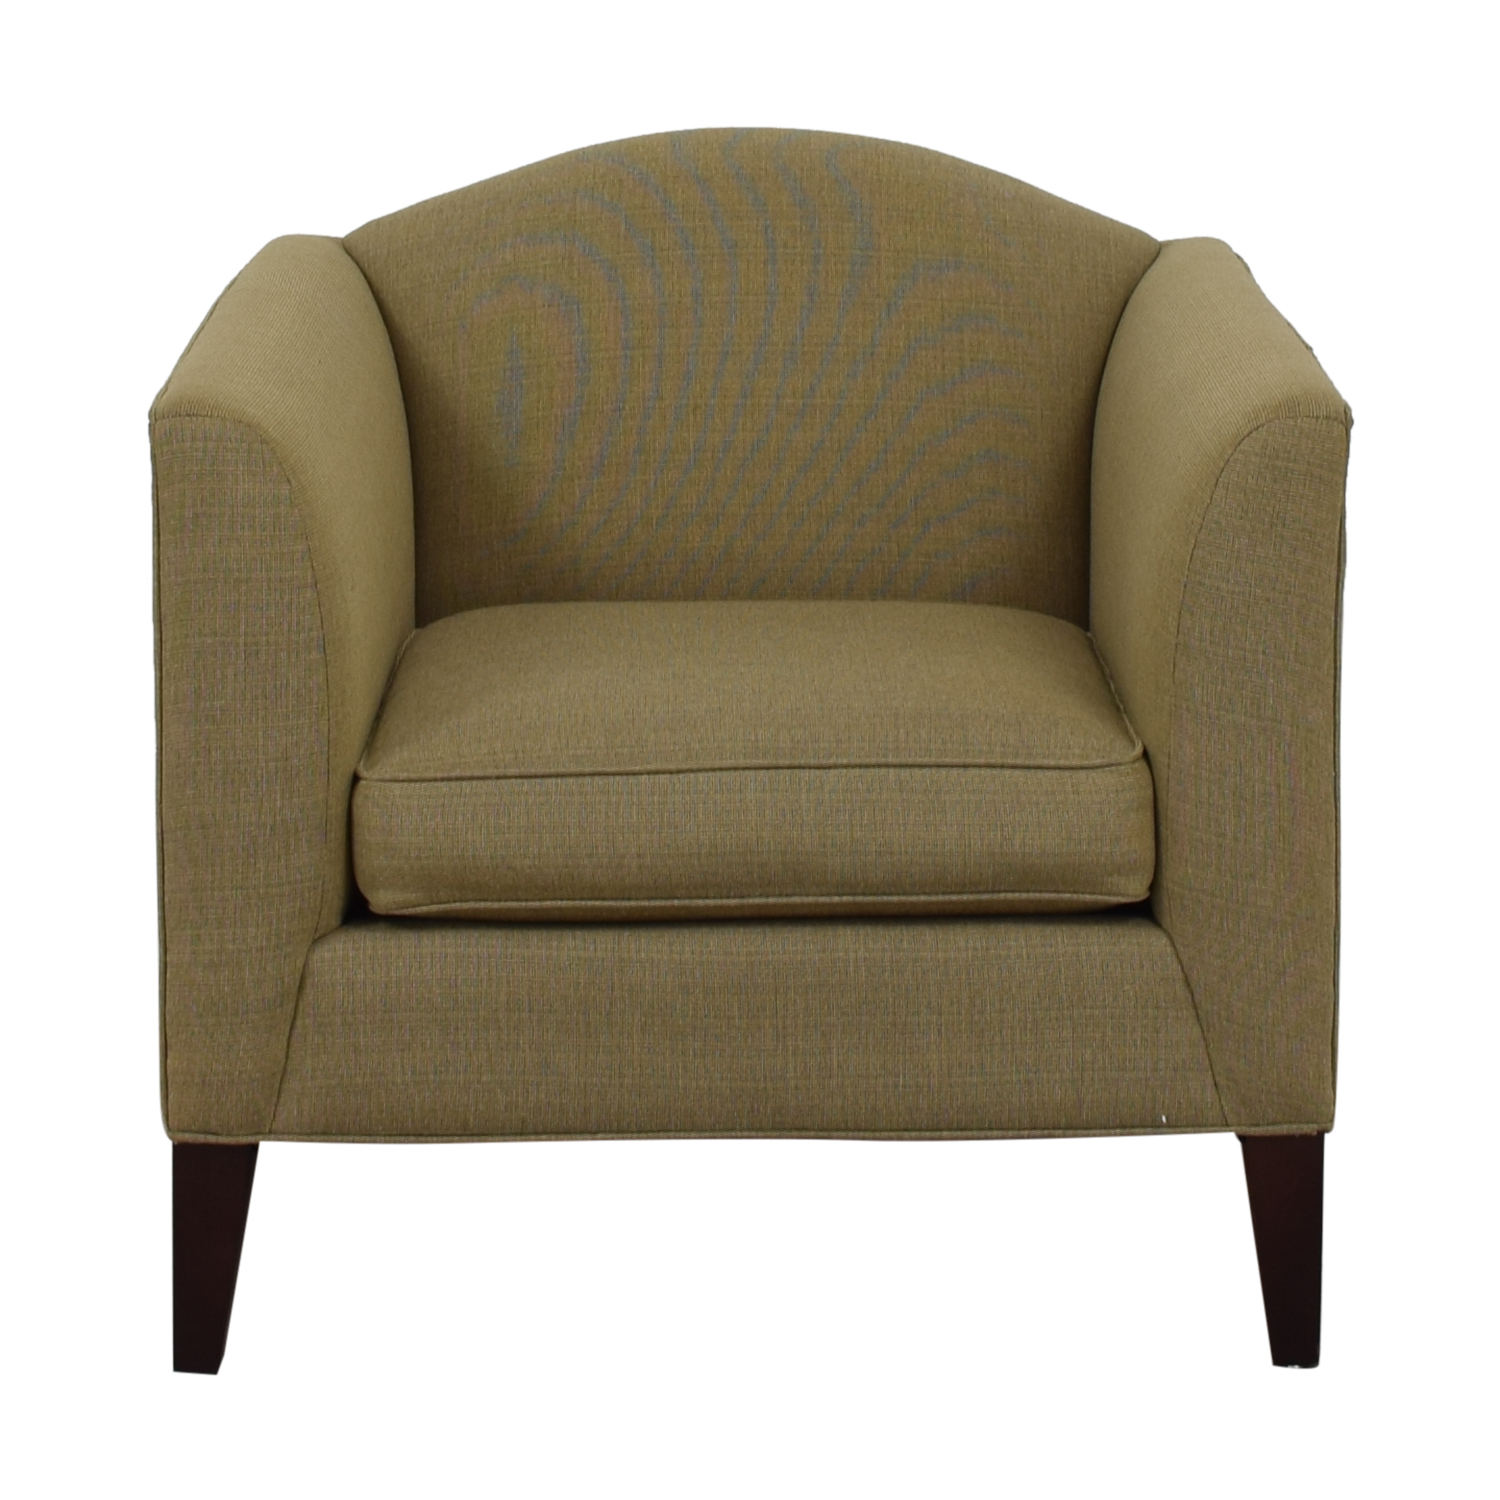 Room & Board Room & Board Flanagan Grey Accent Chair on sale